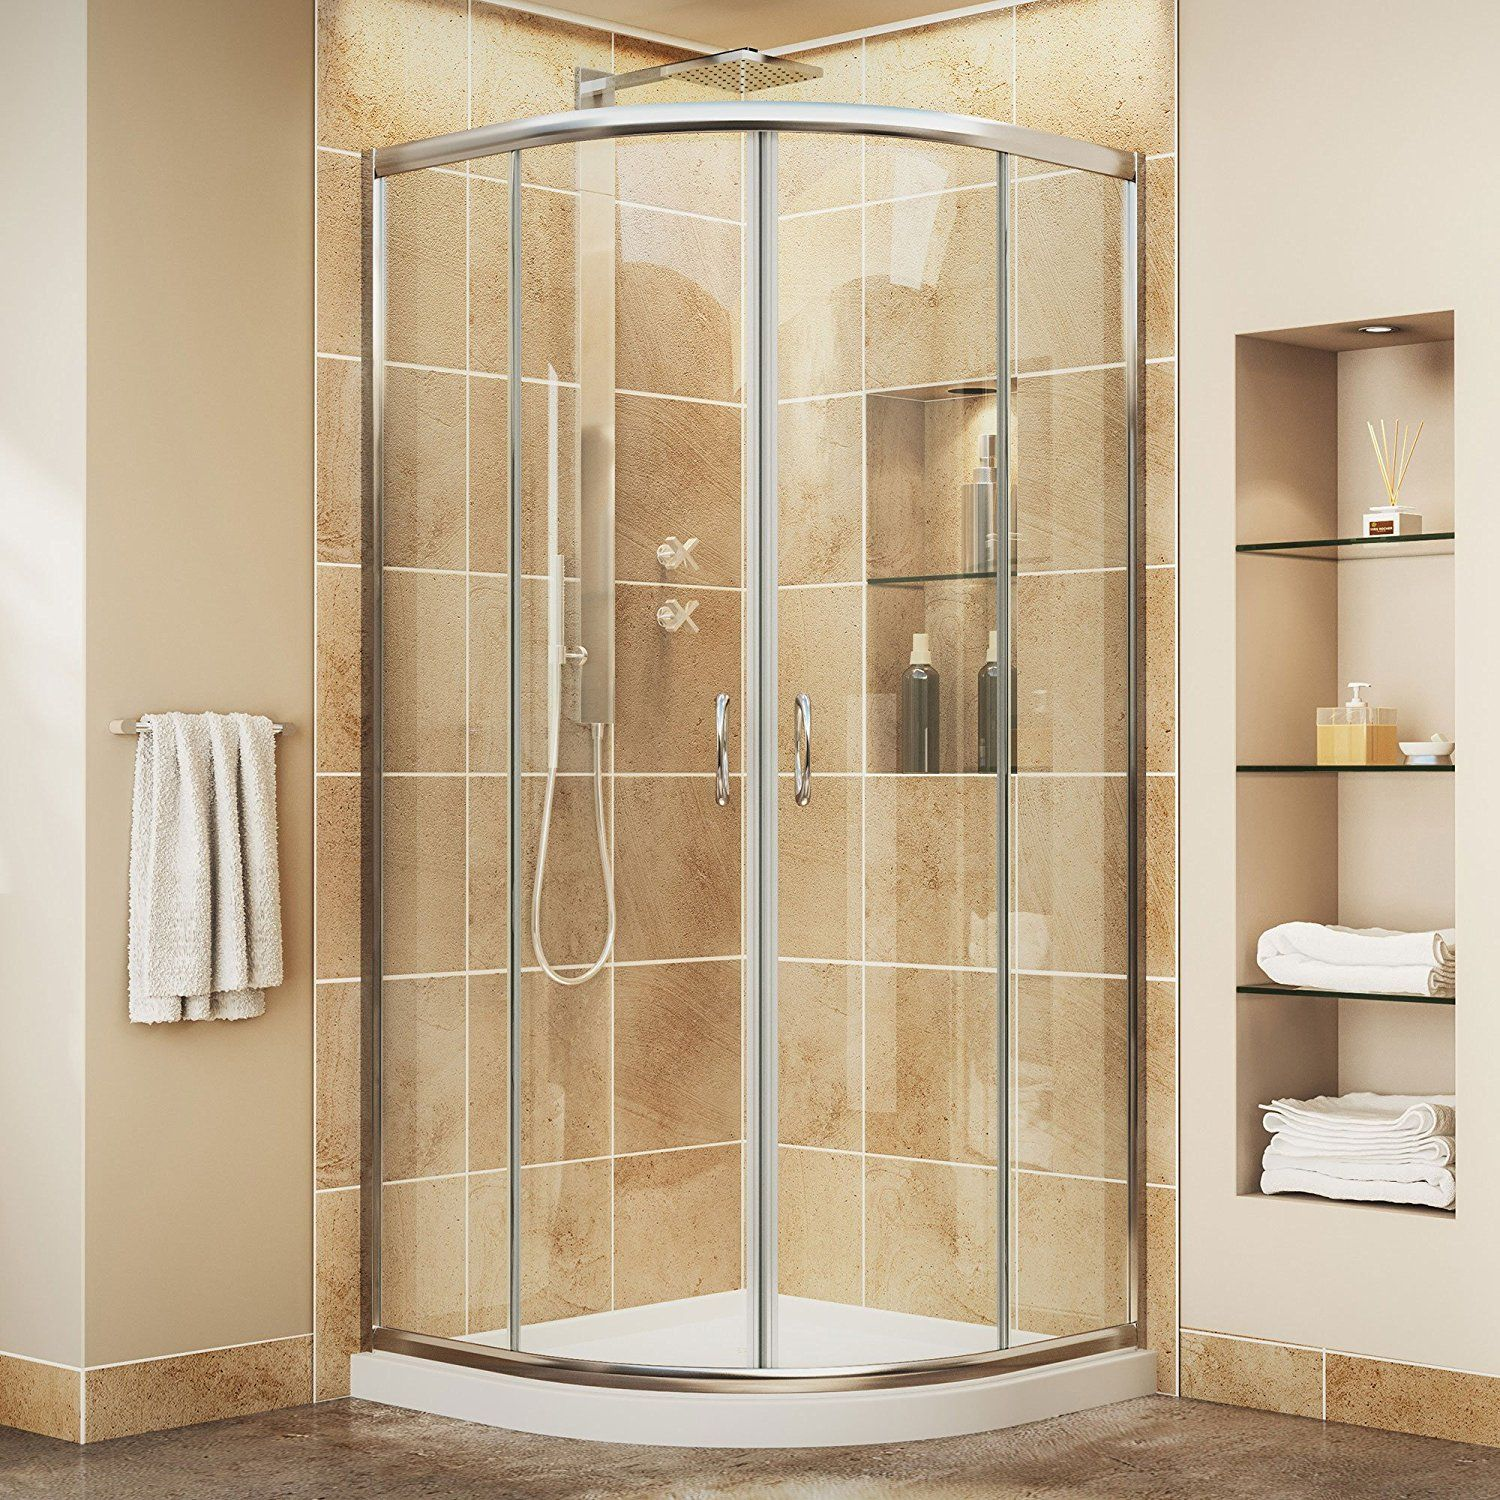 LITTLE BIG LIFE: Great shower wall kit! I love the round door ...